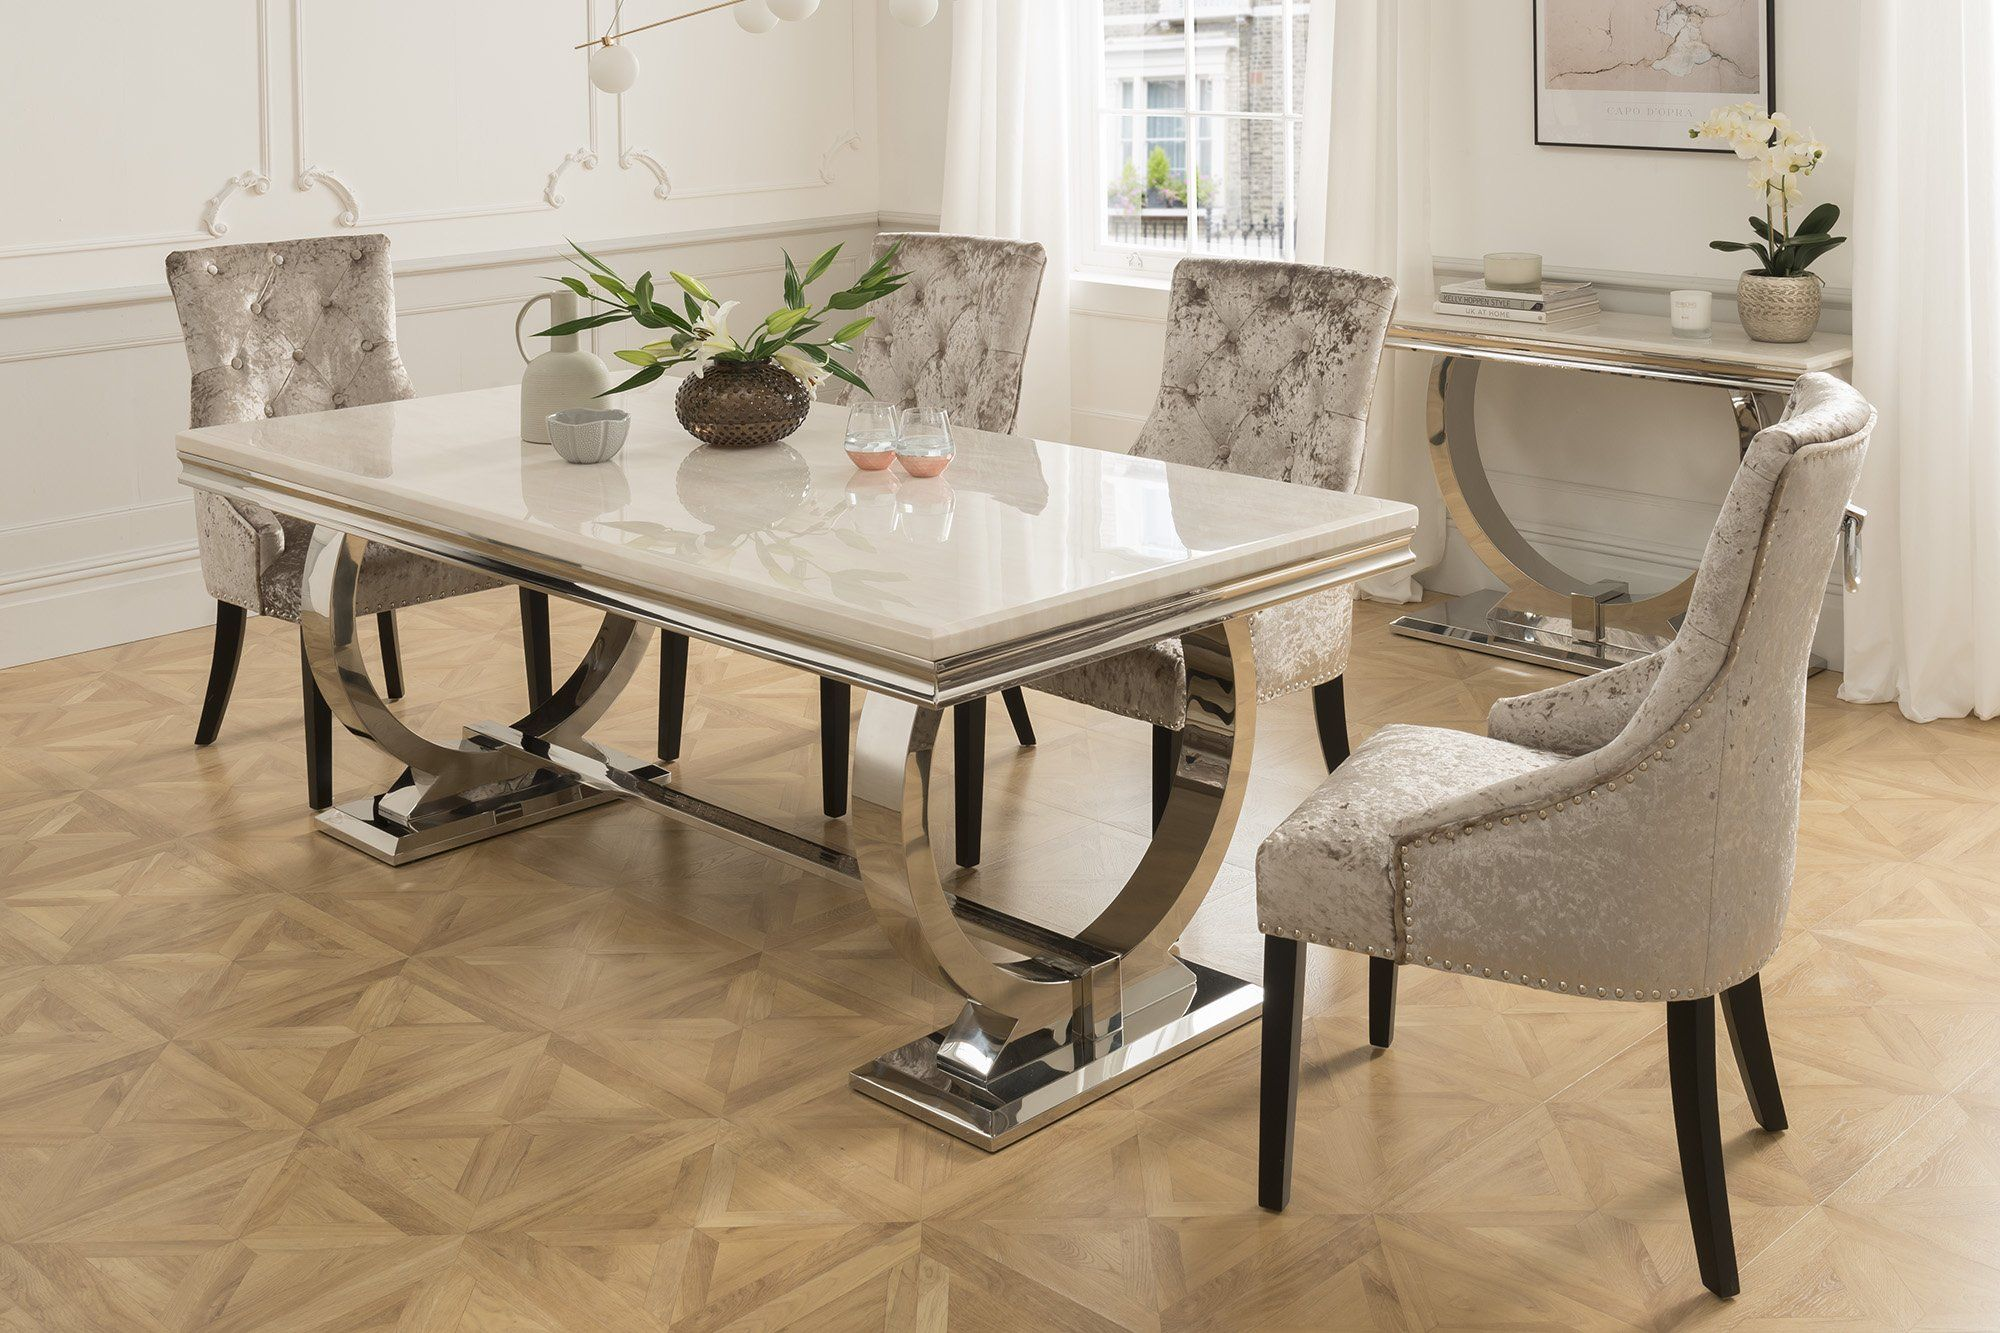 Arabella Dining Set With Standard Chairs 4or6 Chairs Mirrored